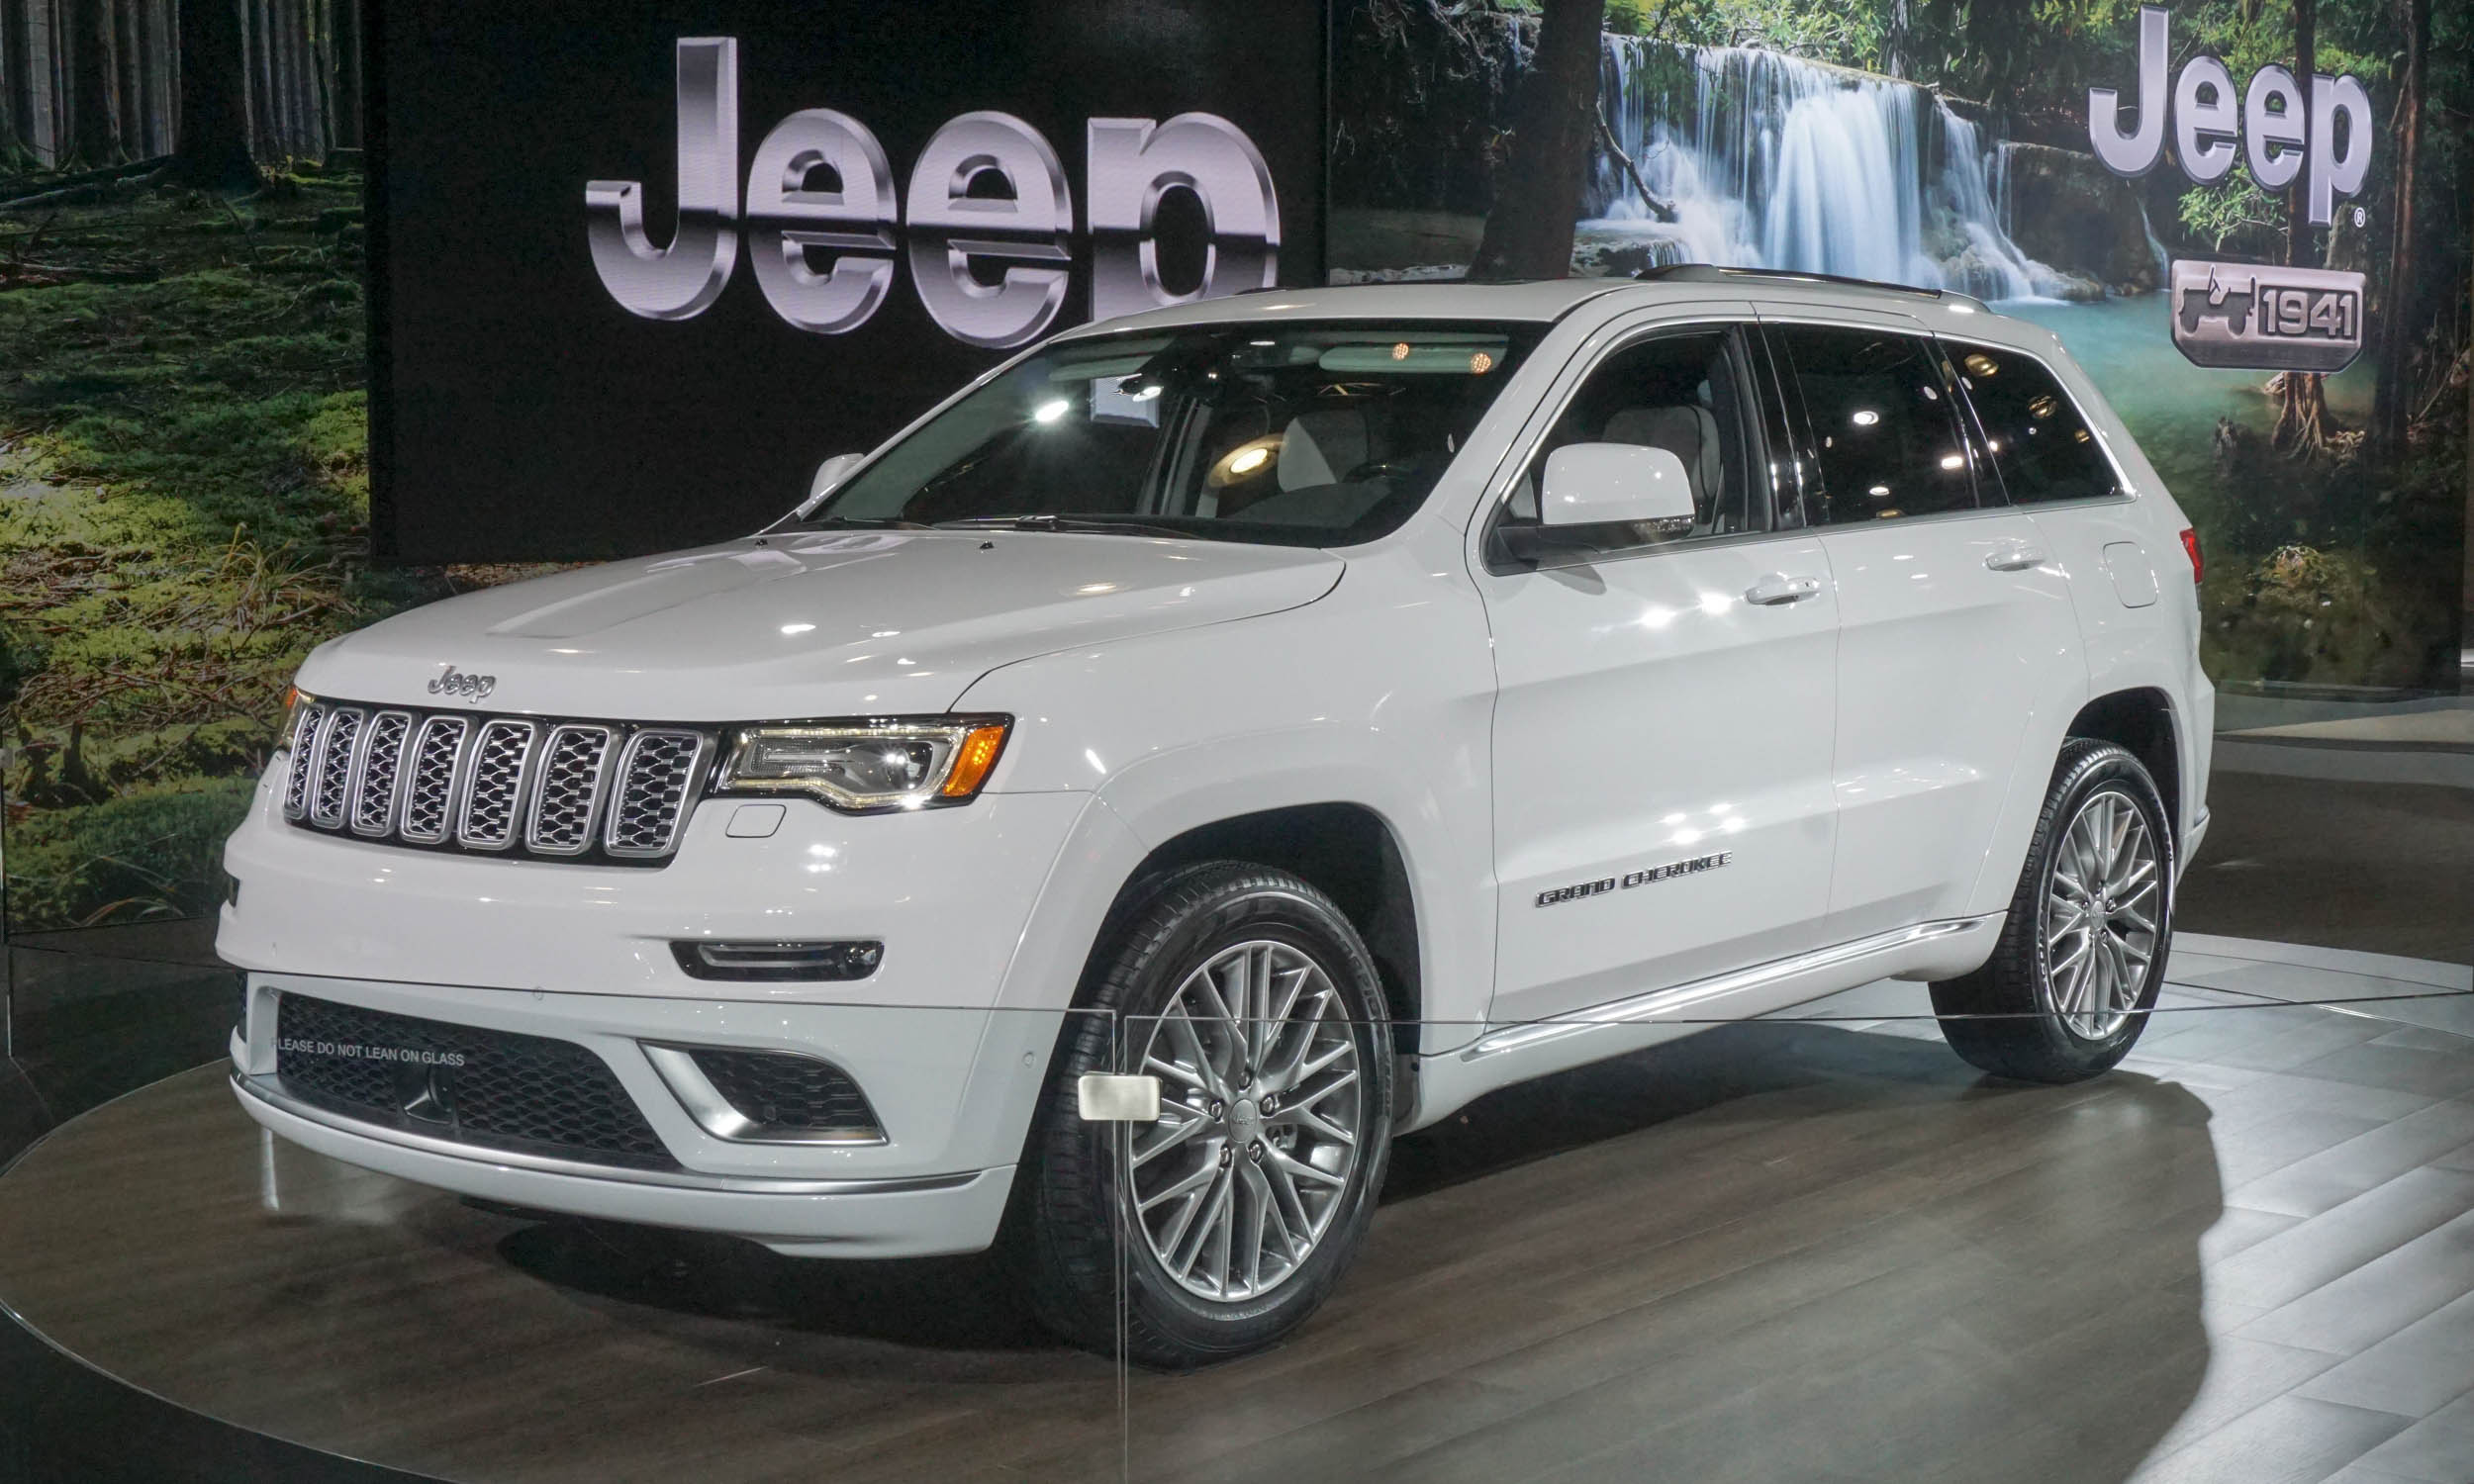 2017 jeep grand cherokee trackhawk release 2017 free engine image for user manual download. Black Bedroom Furniture Sets. Home Design Ideas